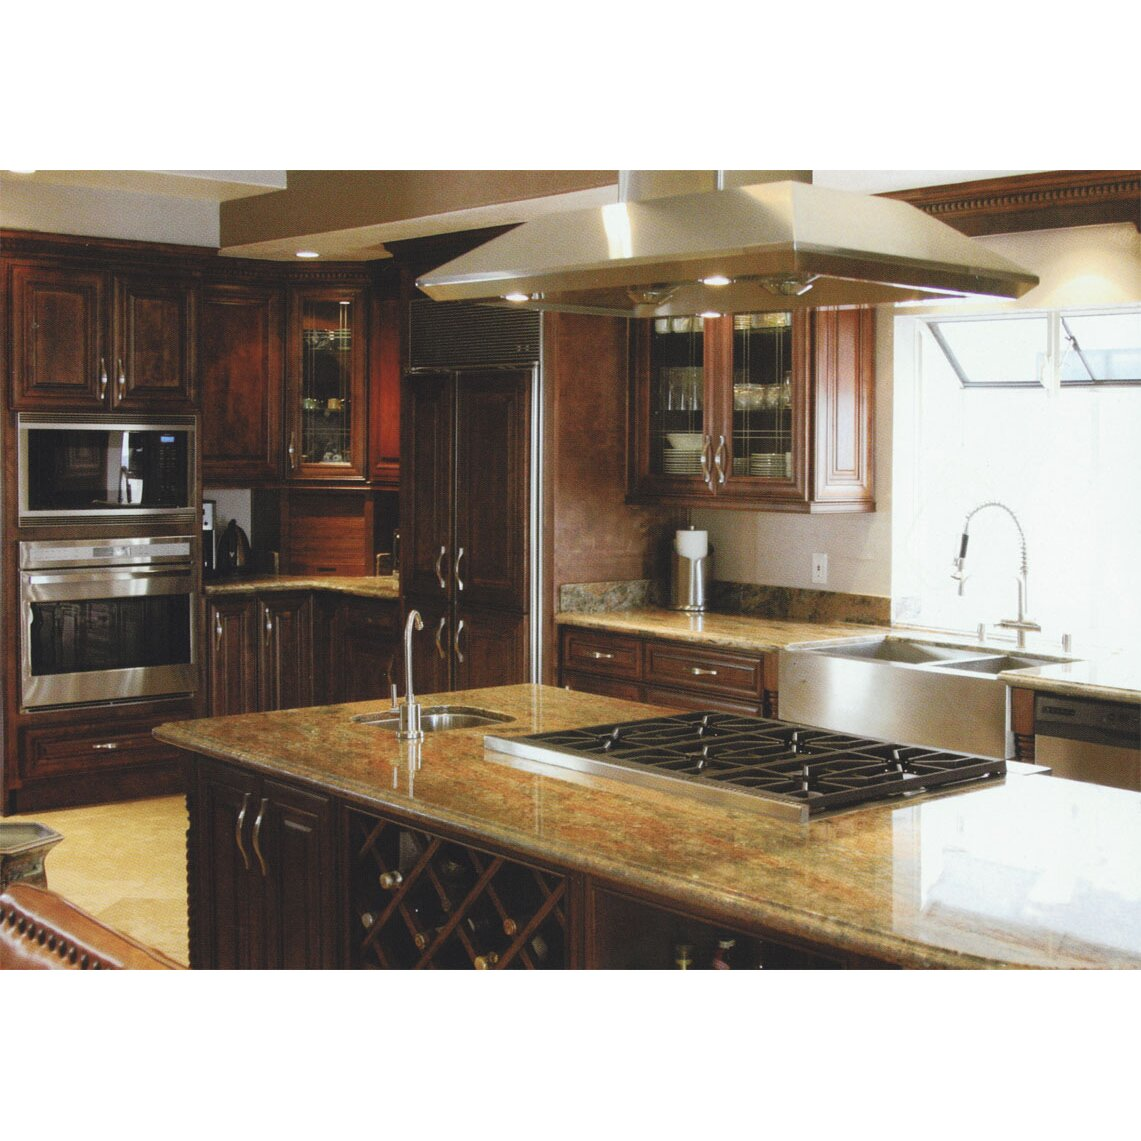 Quality Kitchen Cabinets: Quality One™ 36quot; X 15quot; Unfinished Oak